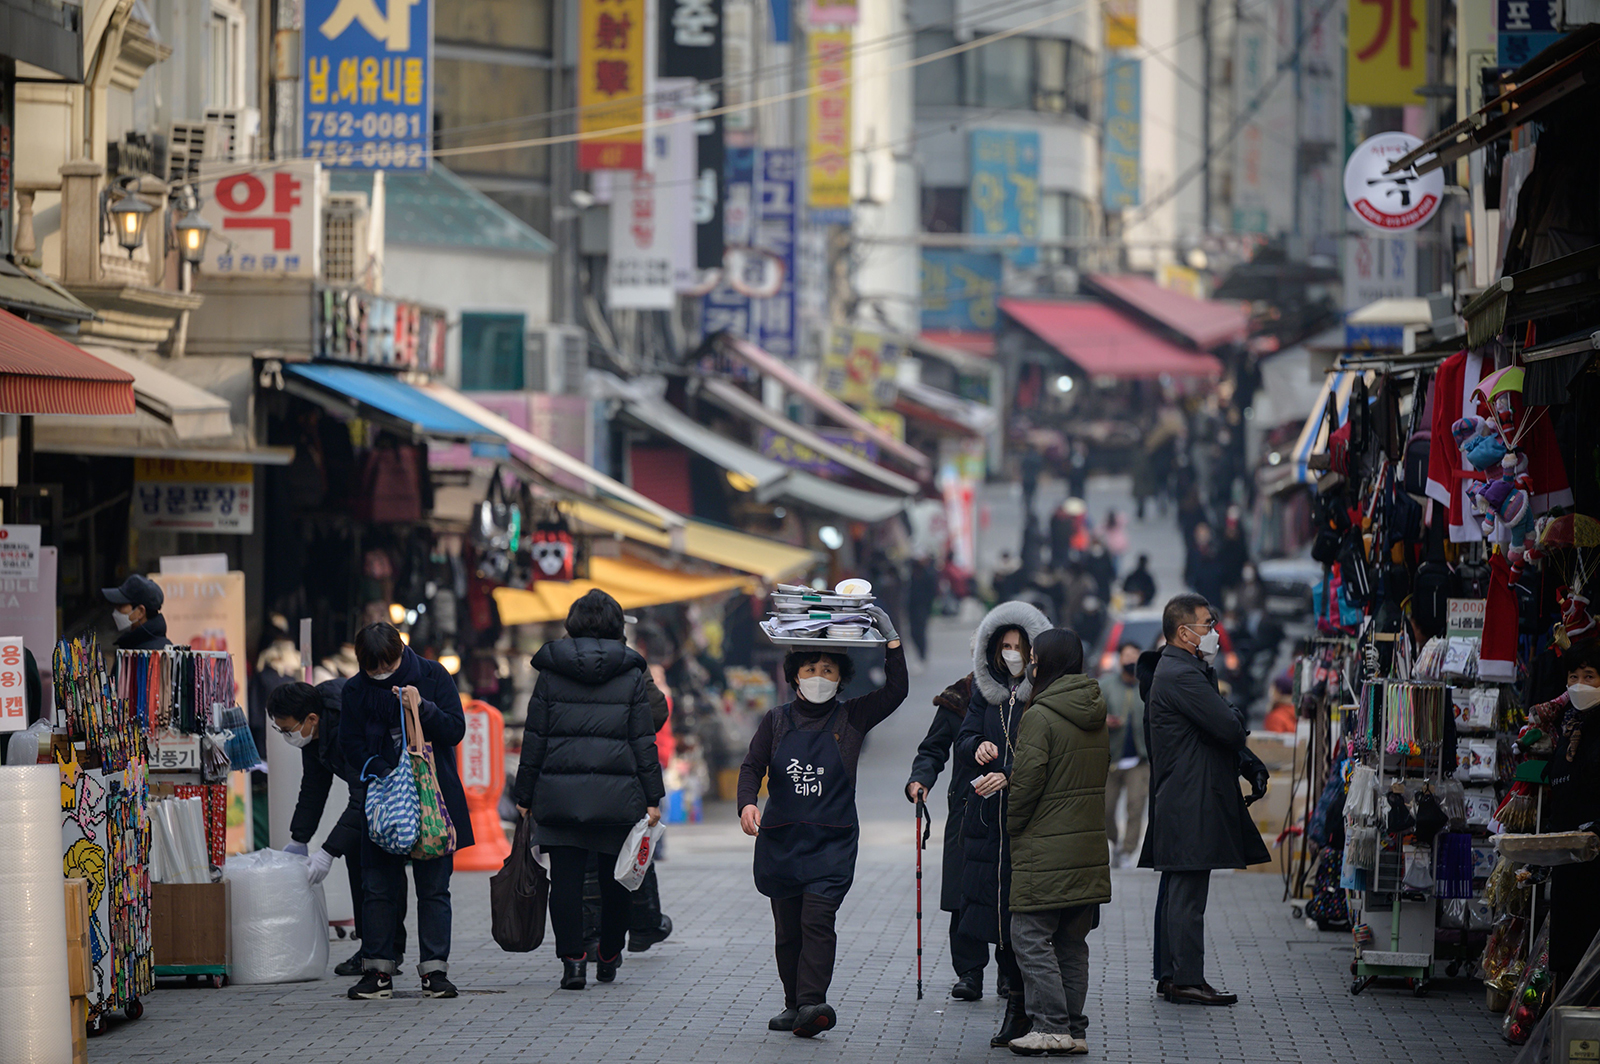 A restaurant worker carries a tray of food through Namdaemun market in Seoul, South Korea, on December 1.